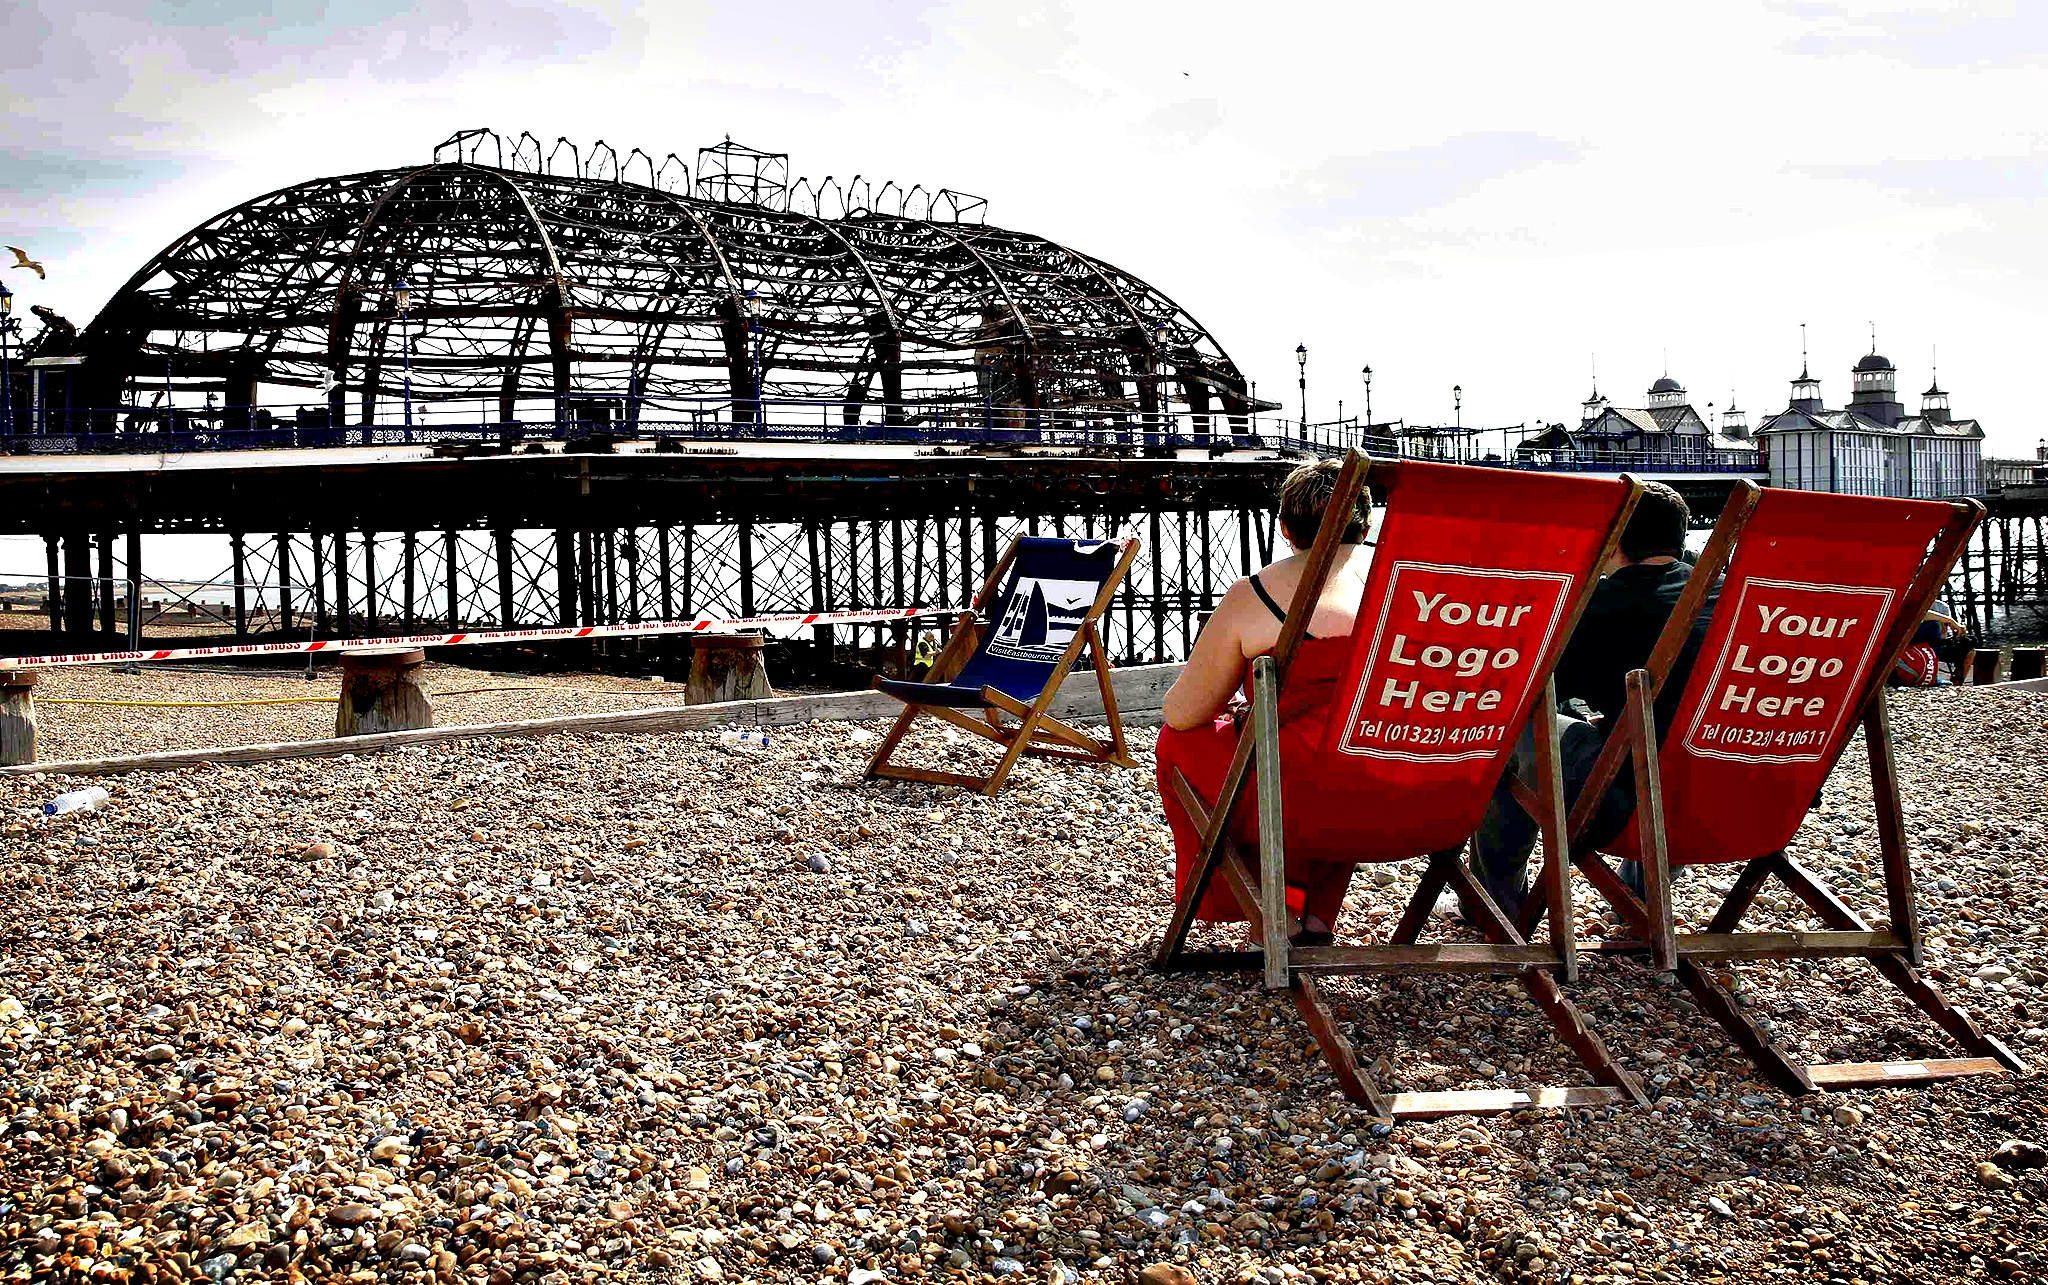 A couple sit in deckchairs on the beach next to the burnt remains of a section of Eastbourne pier, in Eastbourne, southern England July 31, 2014. A Victorian-era seaside pier at Eastbourne on Britain's south coast was badly damaged when fire broke out in an amusement arcade on Wednesday. Flames could be seen leaping from the roof of the two-storey structure as a large plume of smoke rose above the town. No injuries were reported.